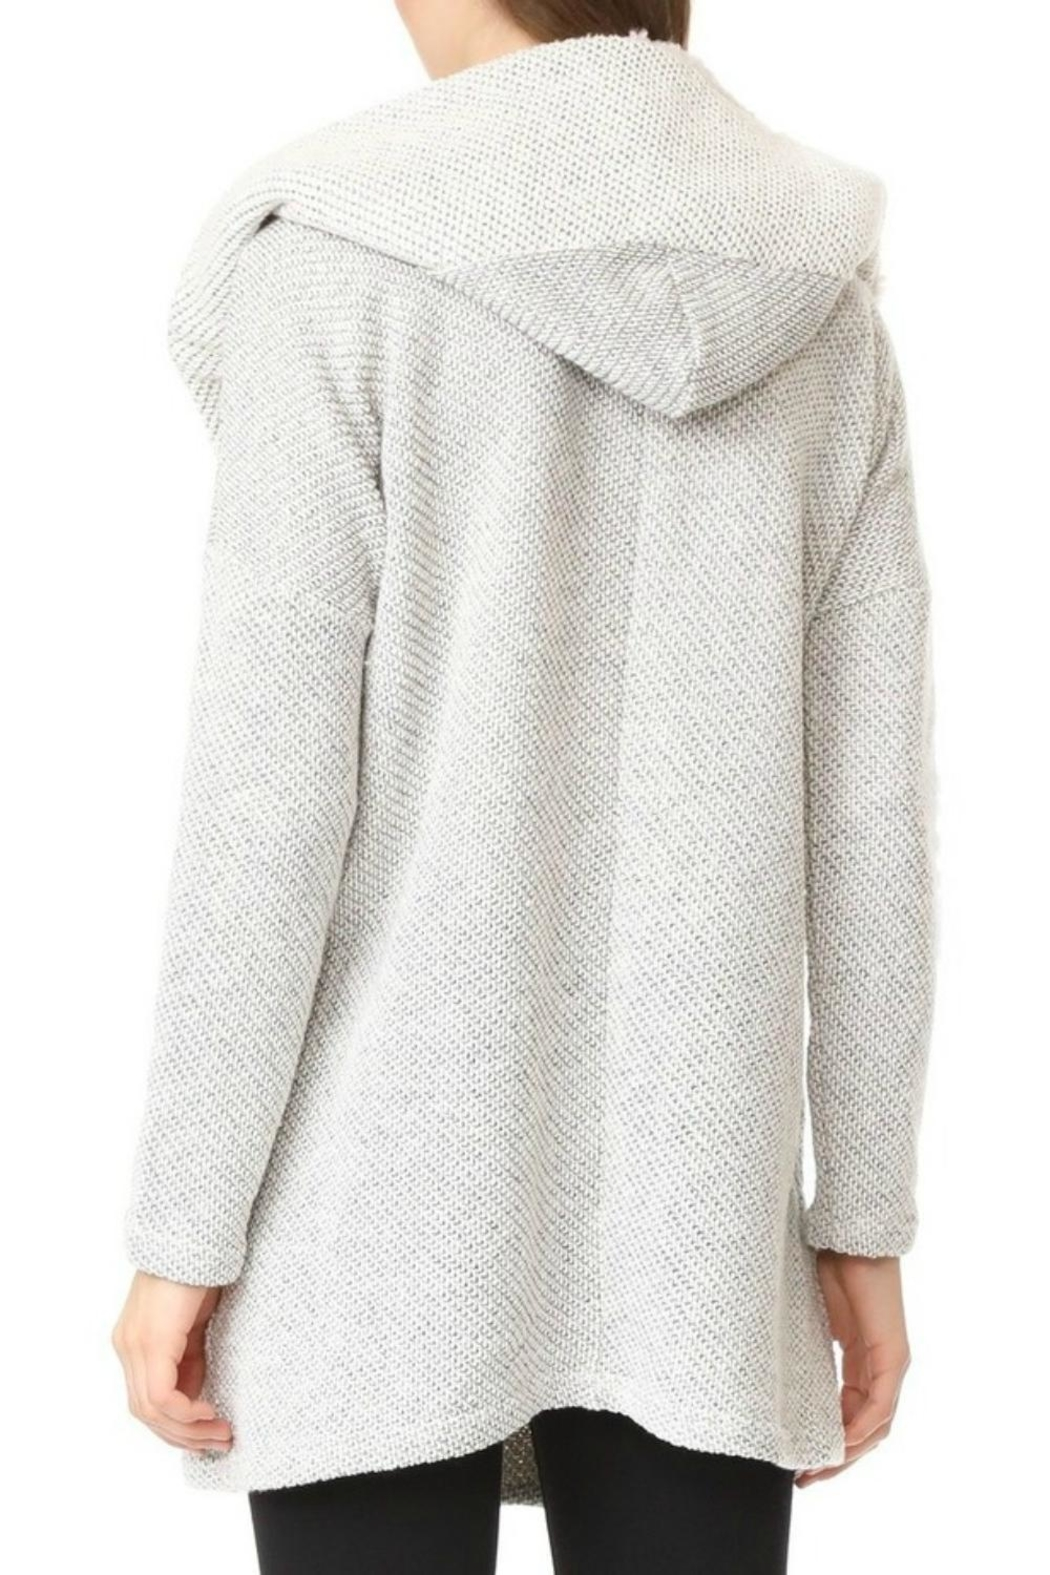 Jack by BB Dakota Connelly Fluffy Cardigan - Side Cropped Image